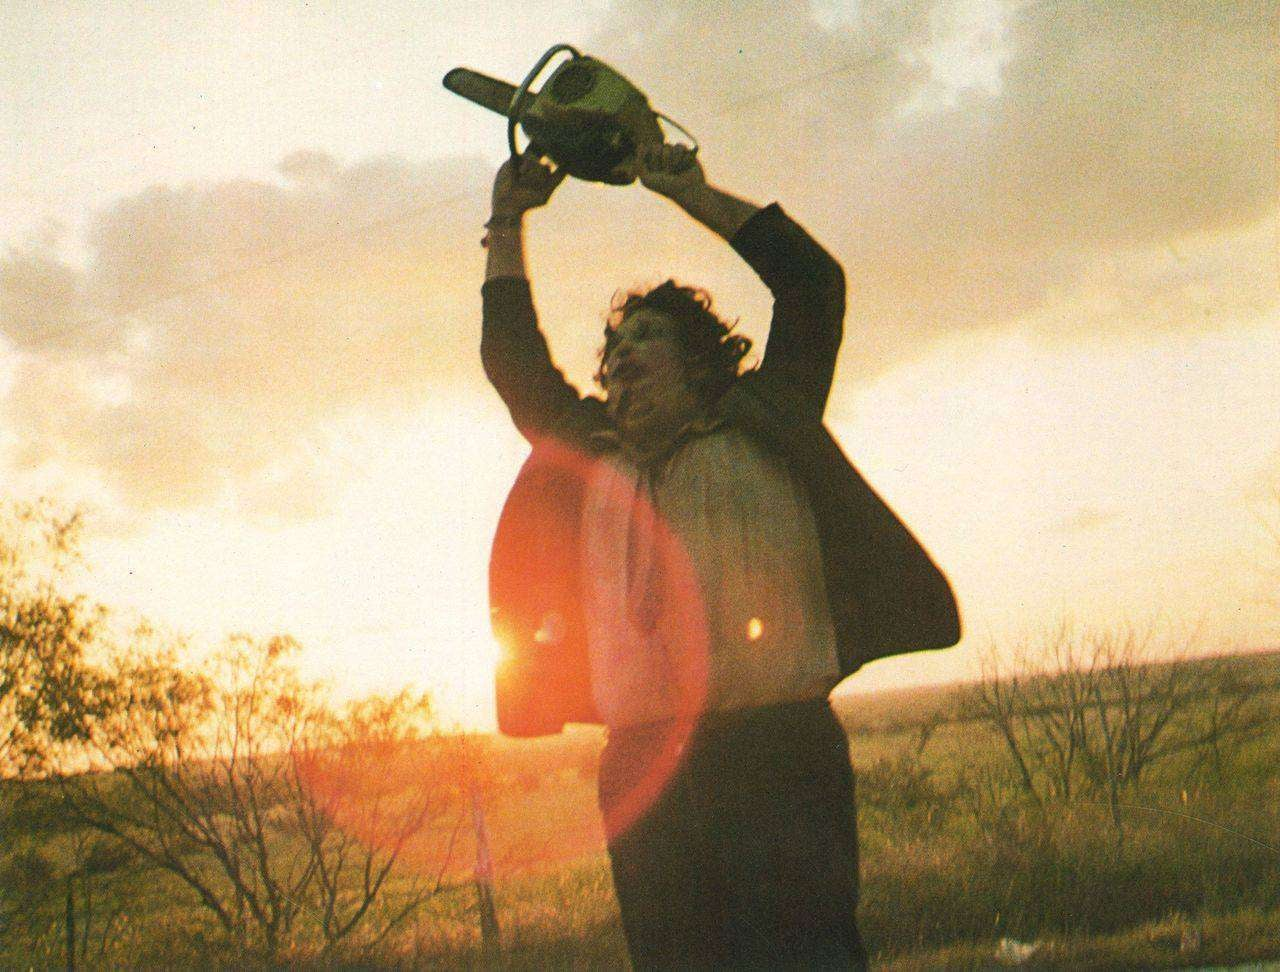 'Leatherface' Filmmakers Considered Making the Iconic Villain Female